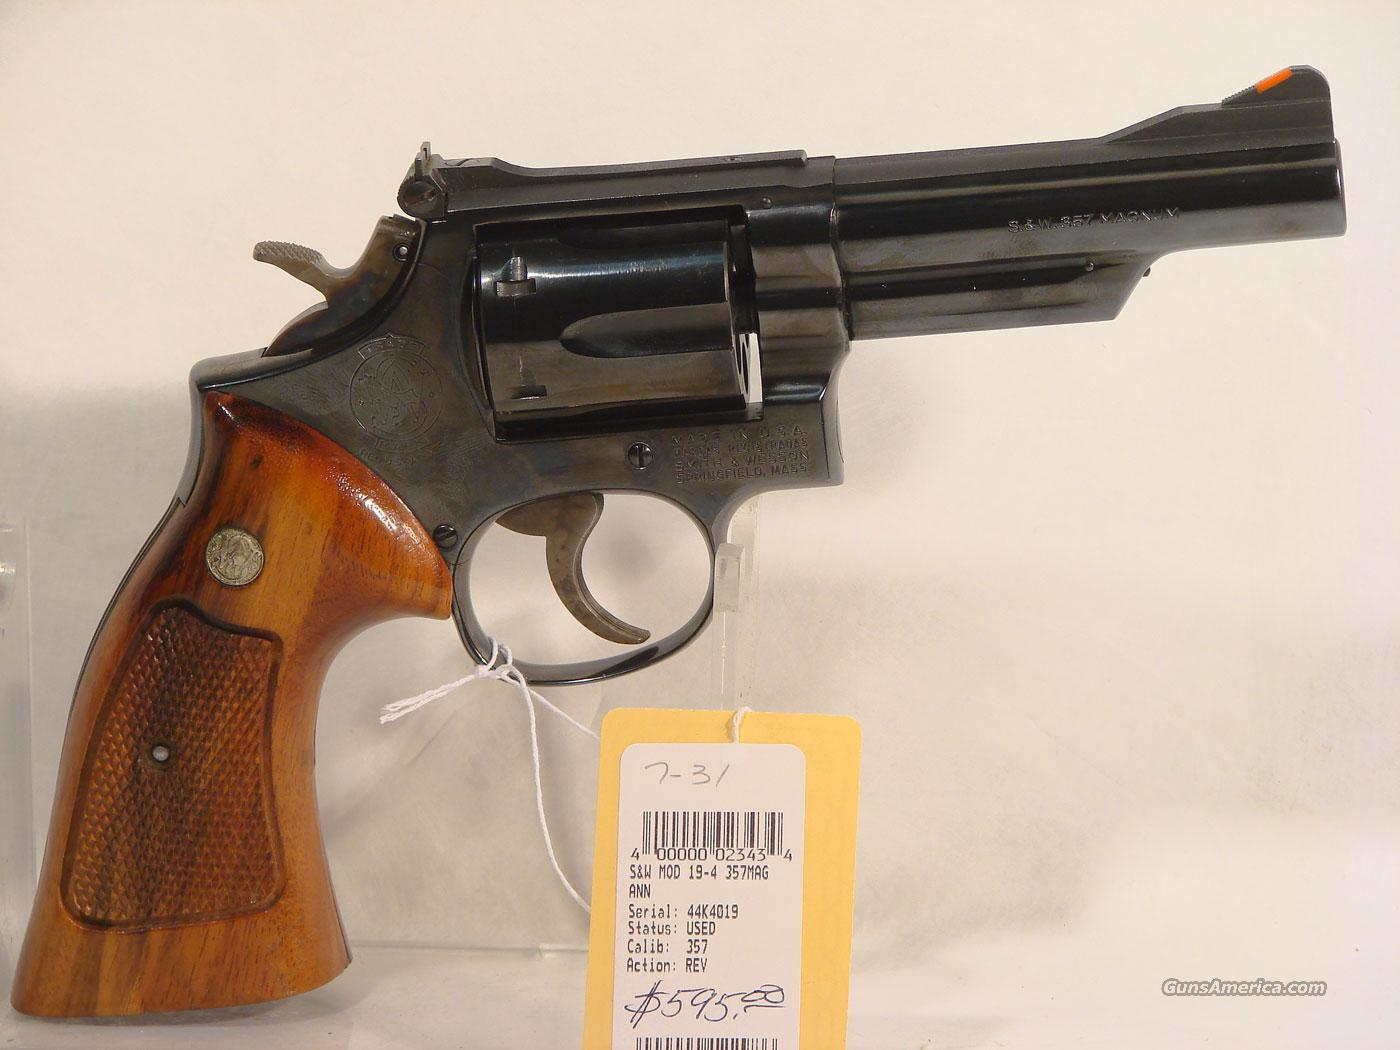 S&W Model 19-4 .357, Excellent condition  Guns > Pistols > Smith & Wesson Revolvers > Full Frame Revolver